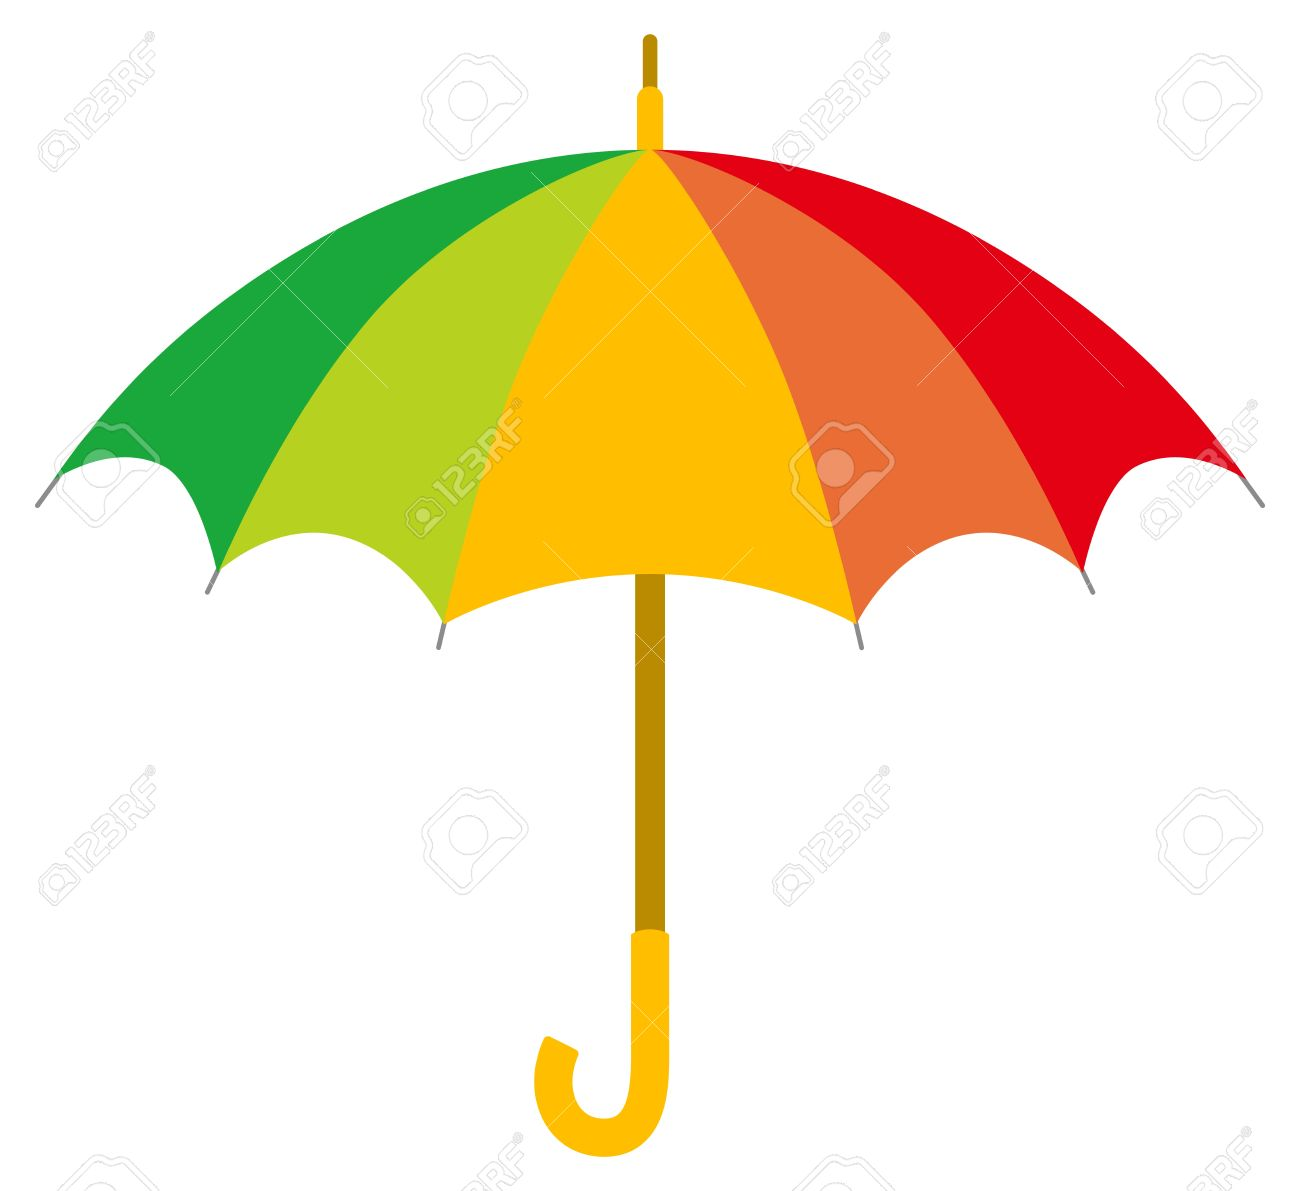 Colorful Umbrella Royalty Free Cliparts, Vectors, And Stock.